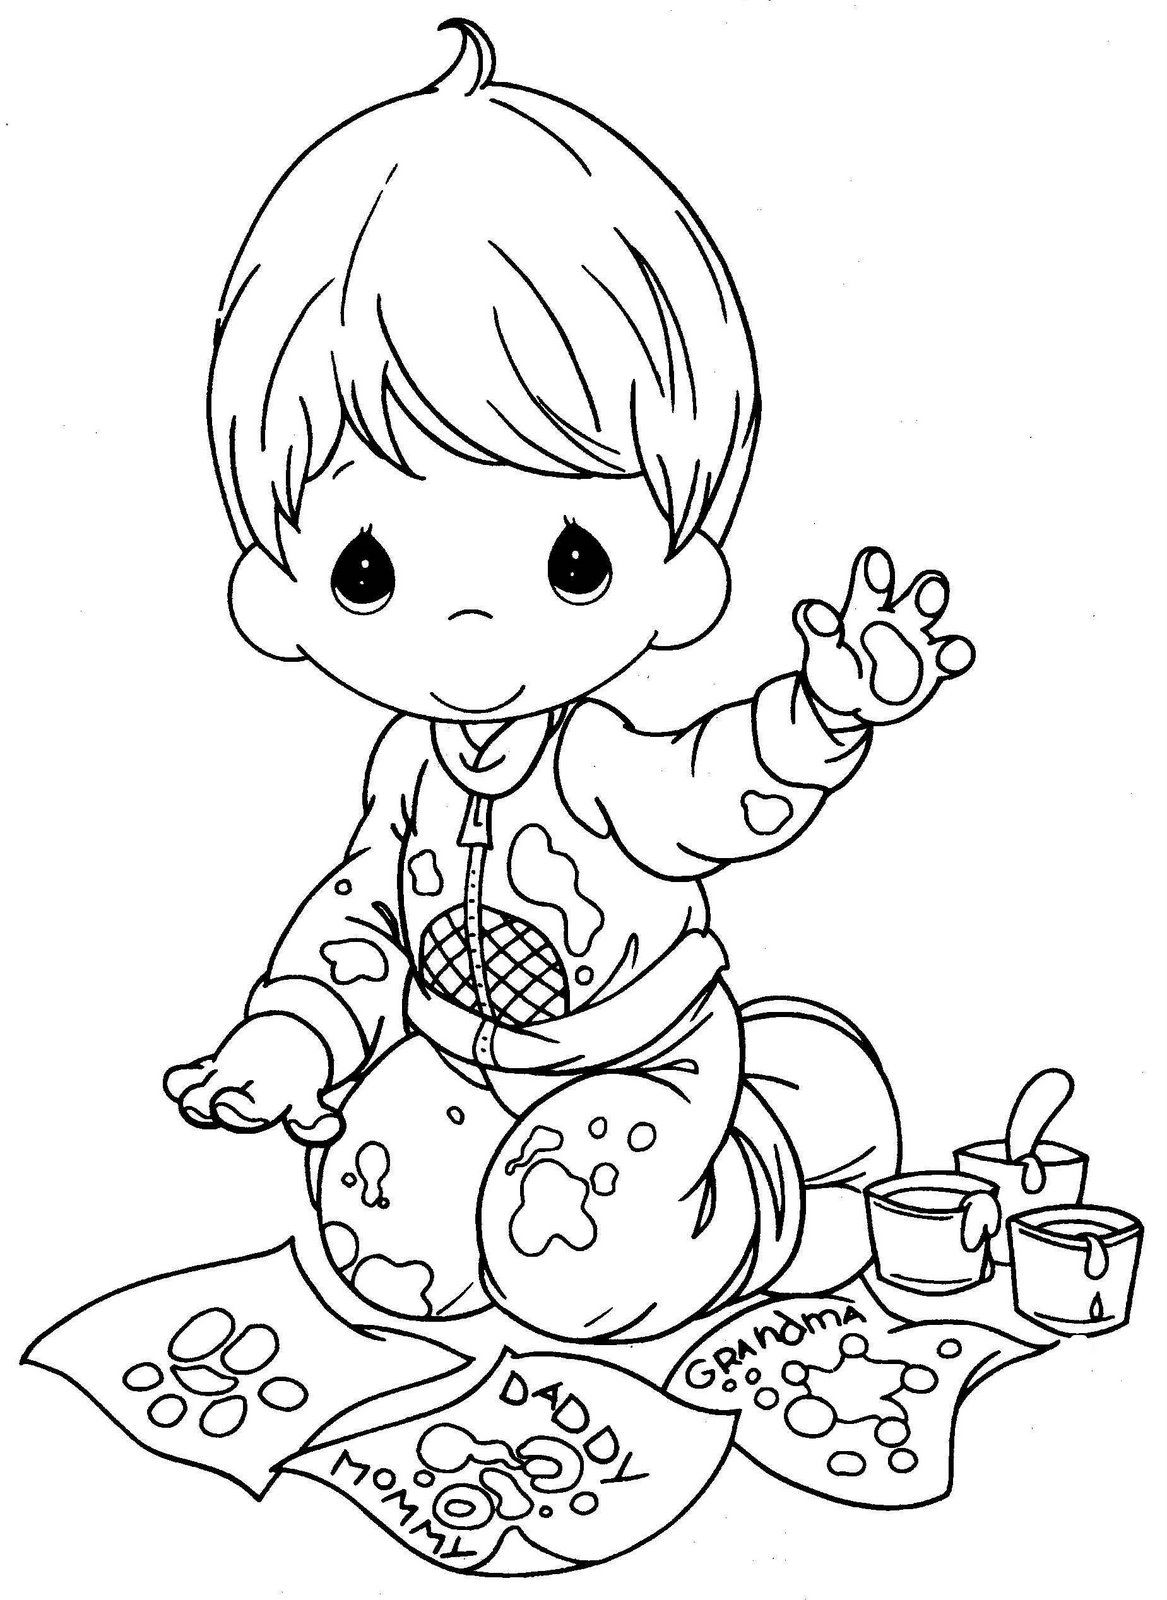 Cute child finger painting precious moments coloring pages